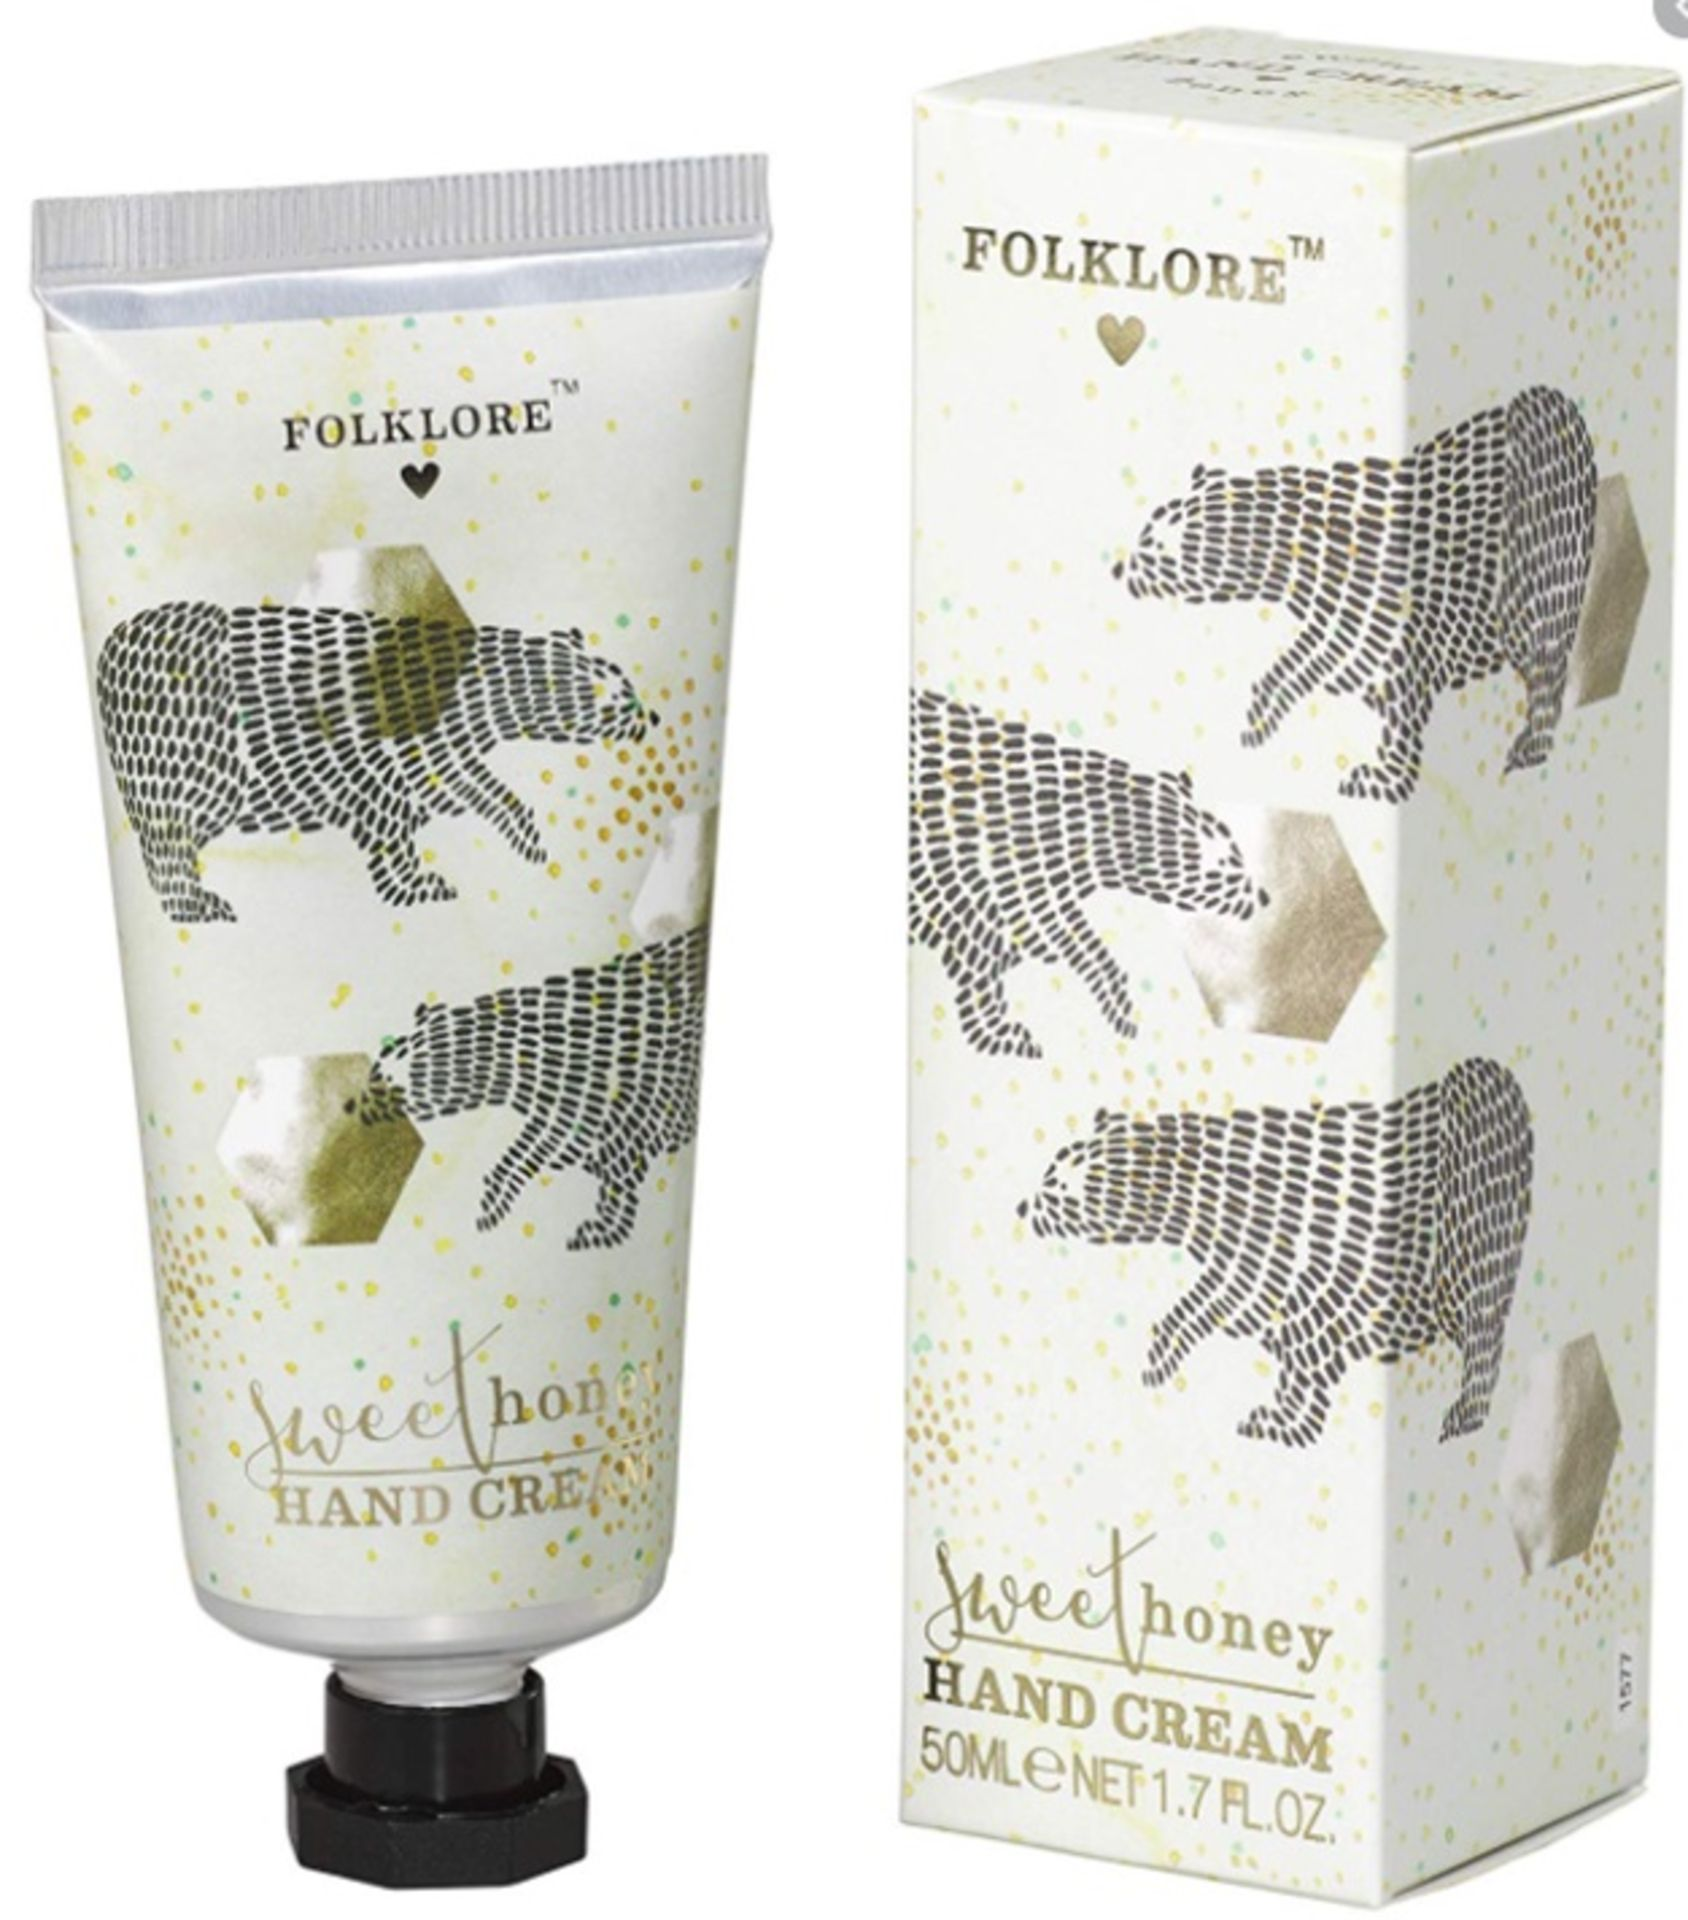 100 x Various Folklore Handcream   50ml   Total RRP £899 - Image 4 of 4